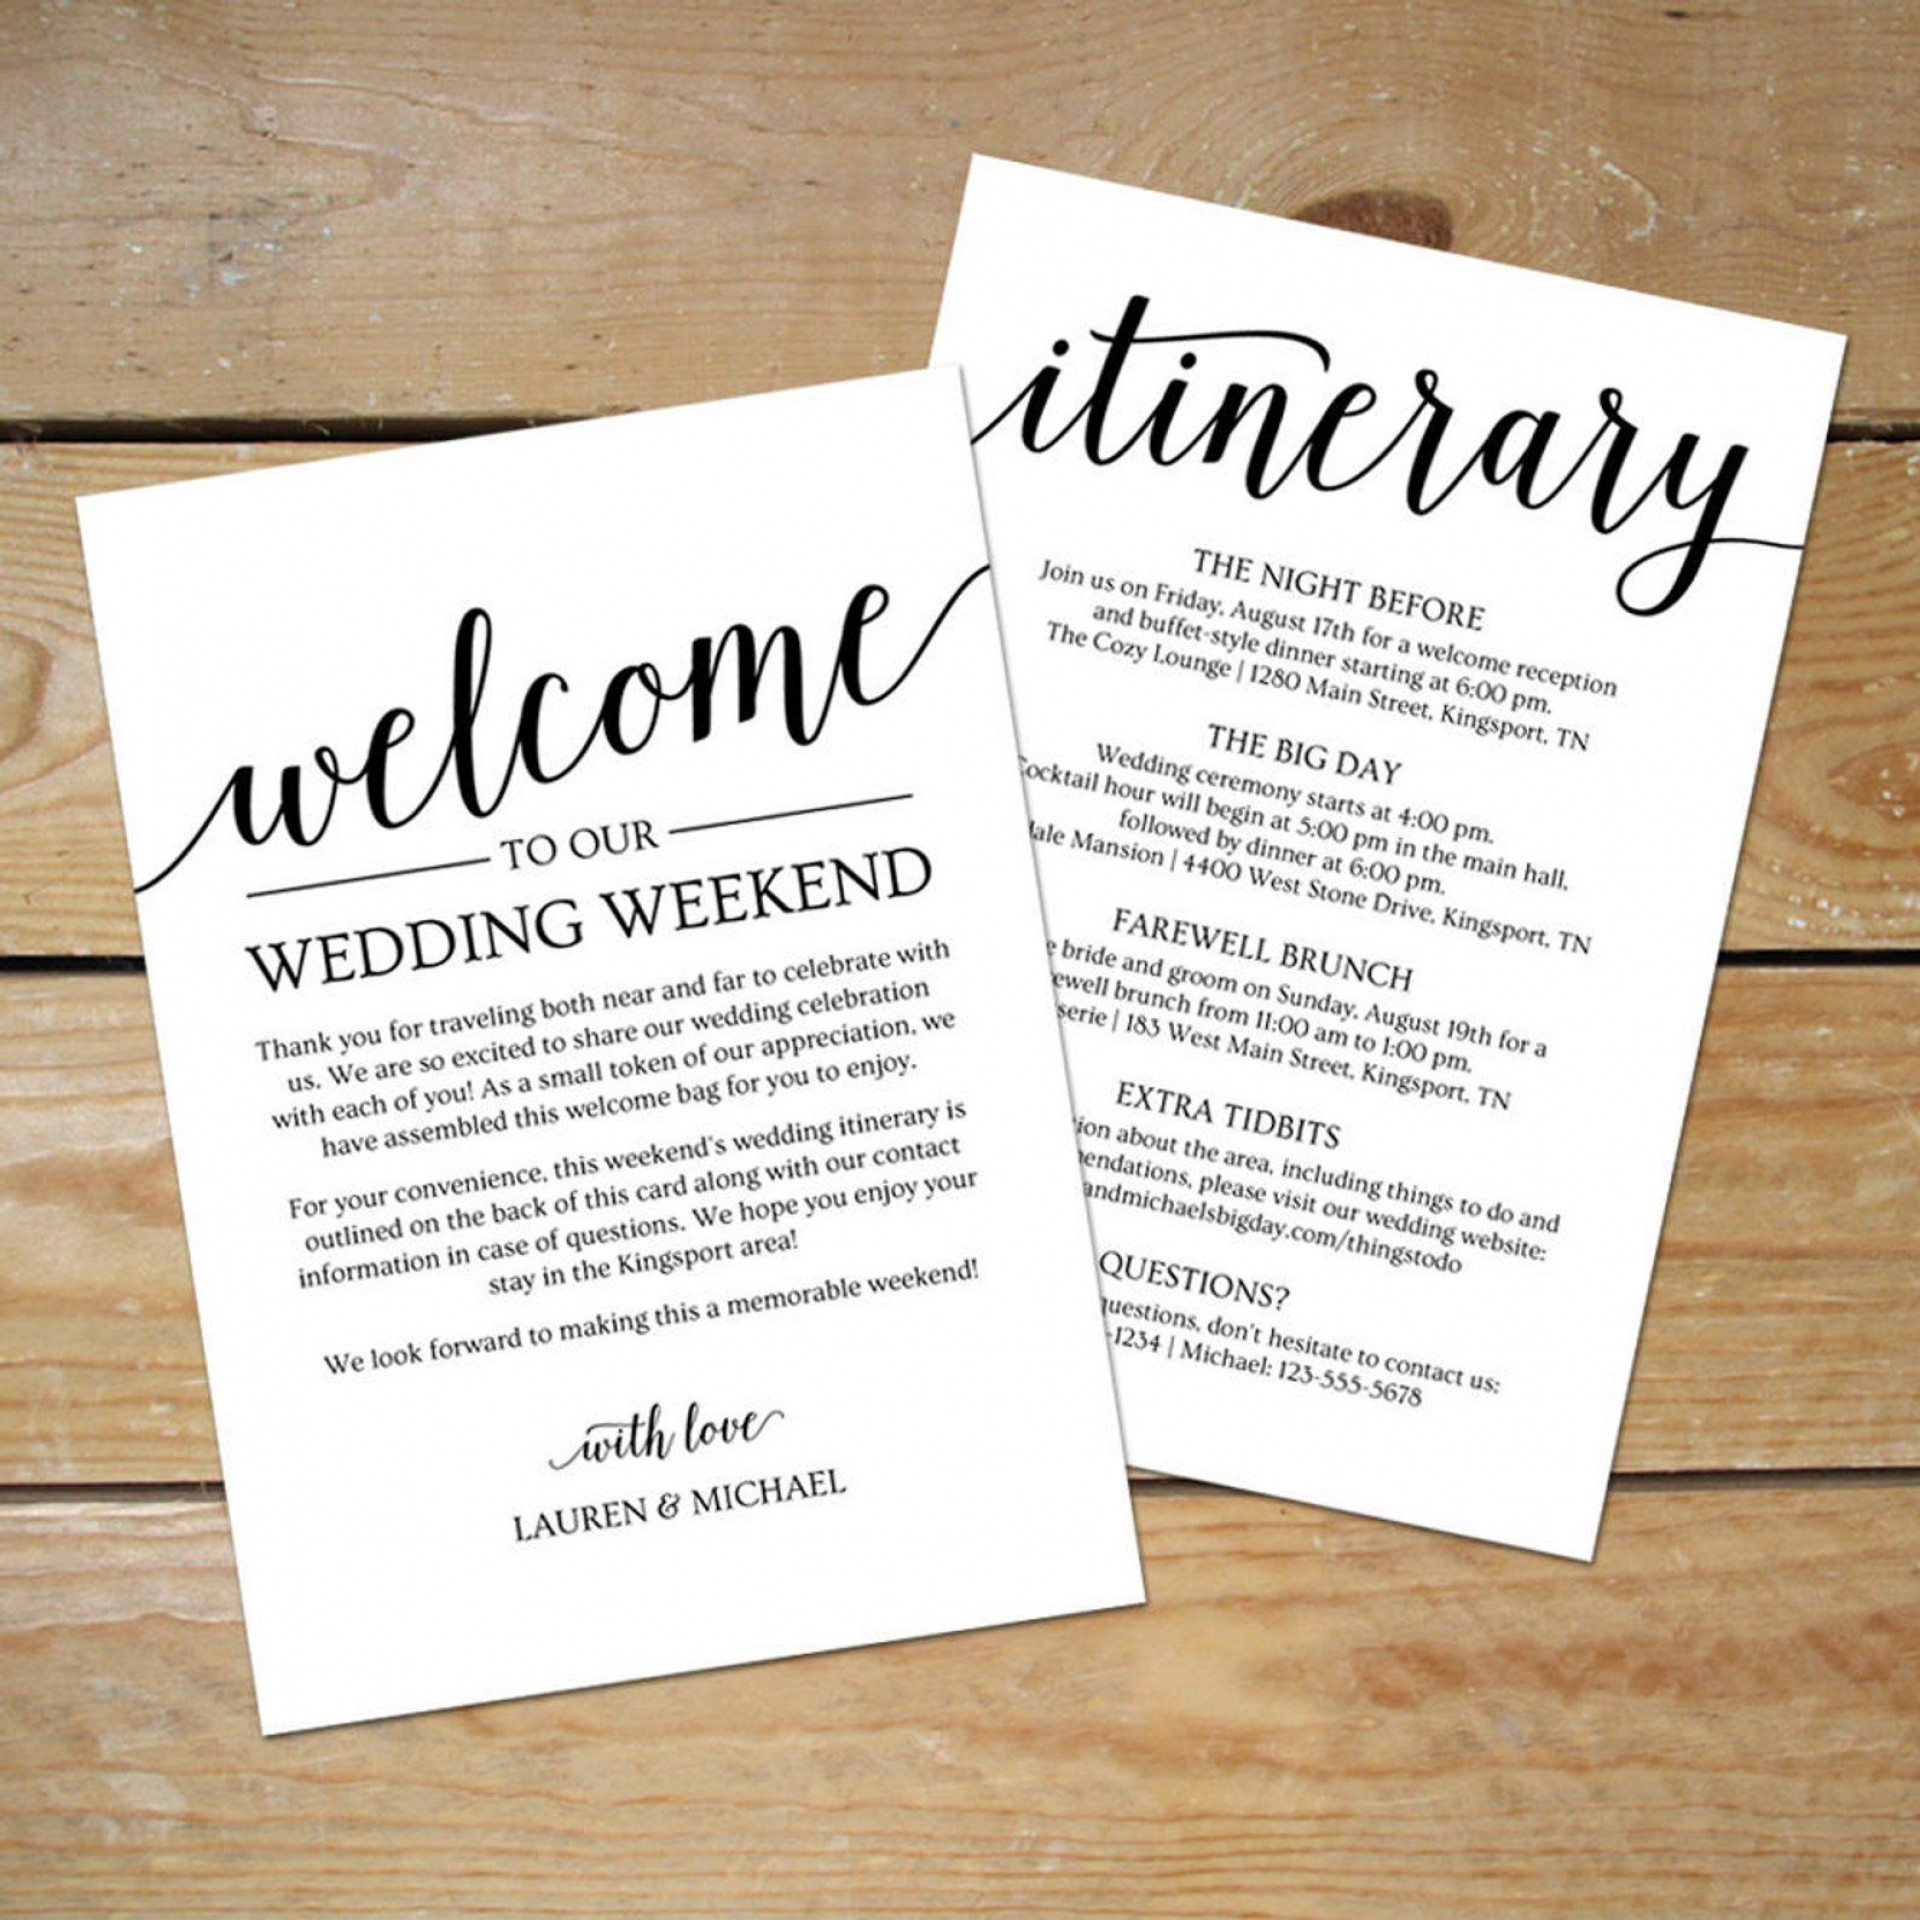 002 Unforgettable Destination Wedding Welcome Letter Template Picture  And Itinerary1920